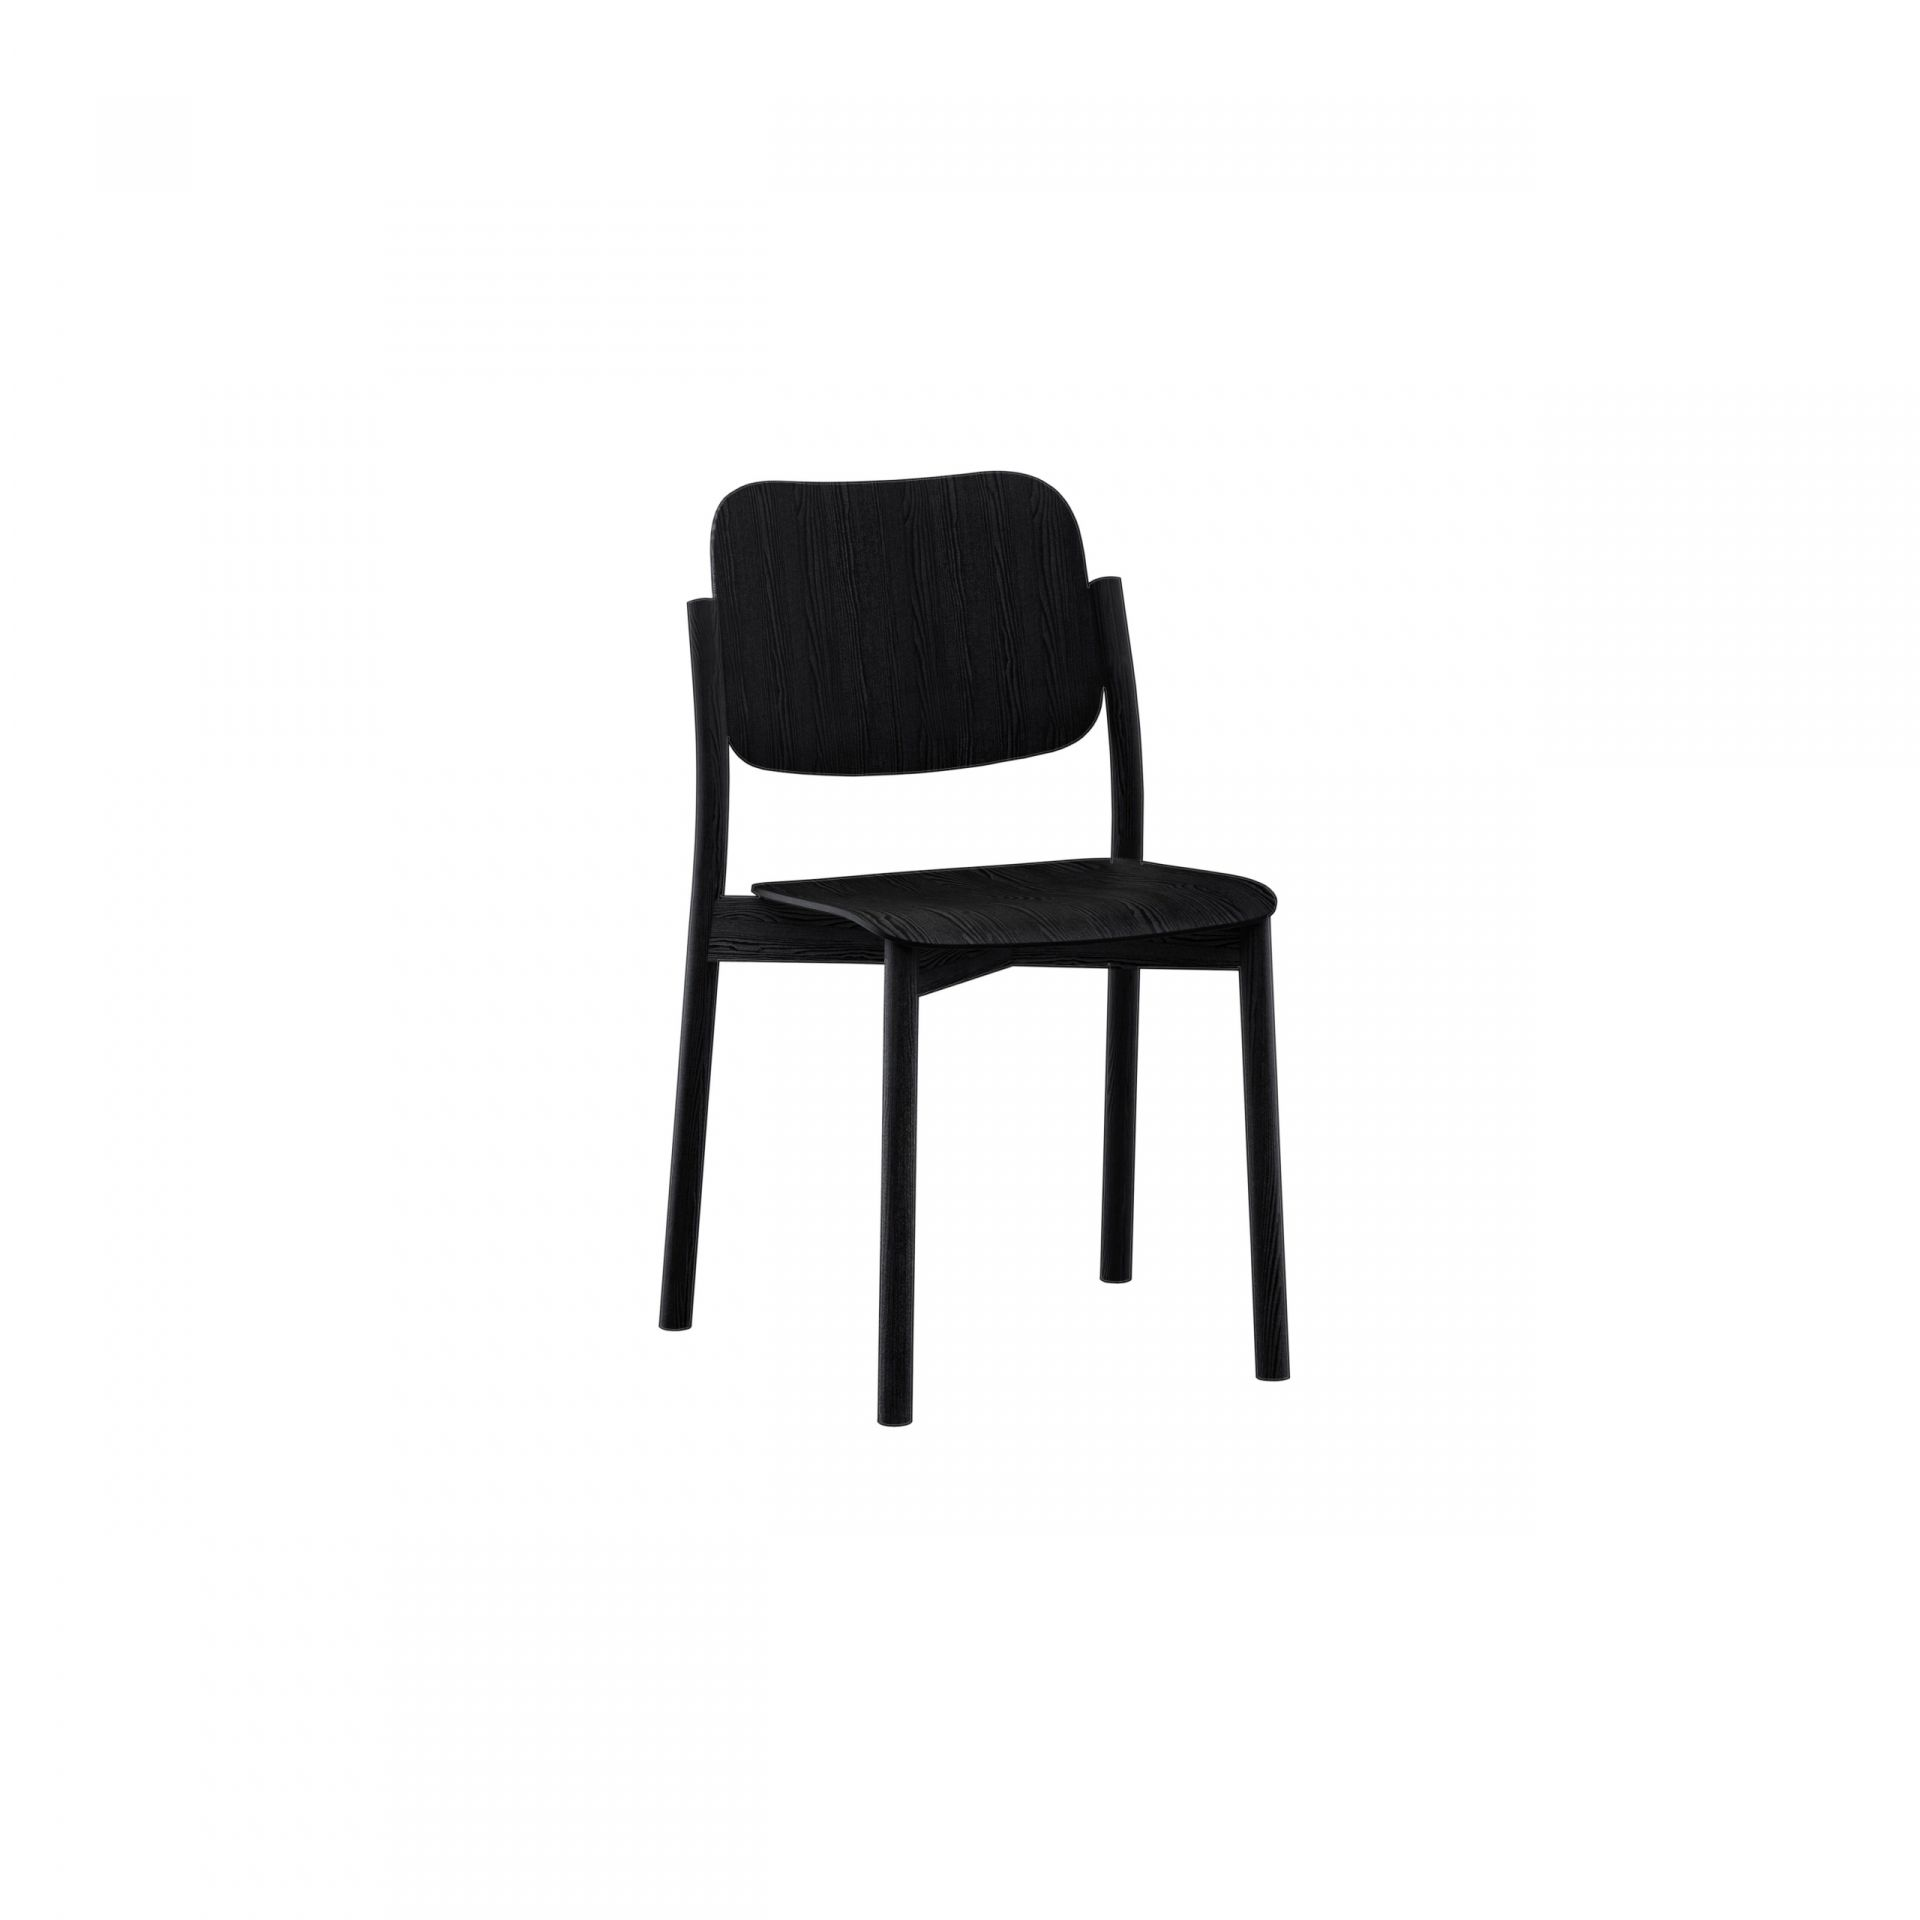 Zoe Wooden chair product image 7